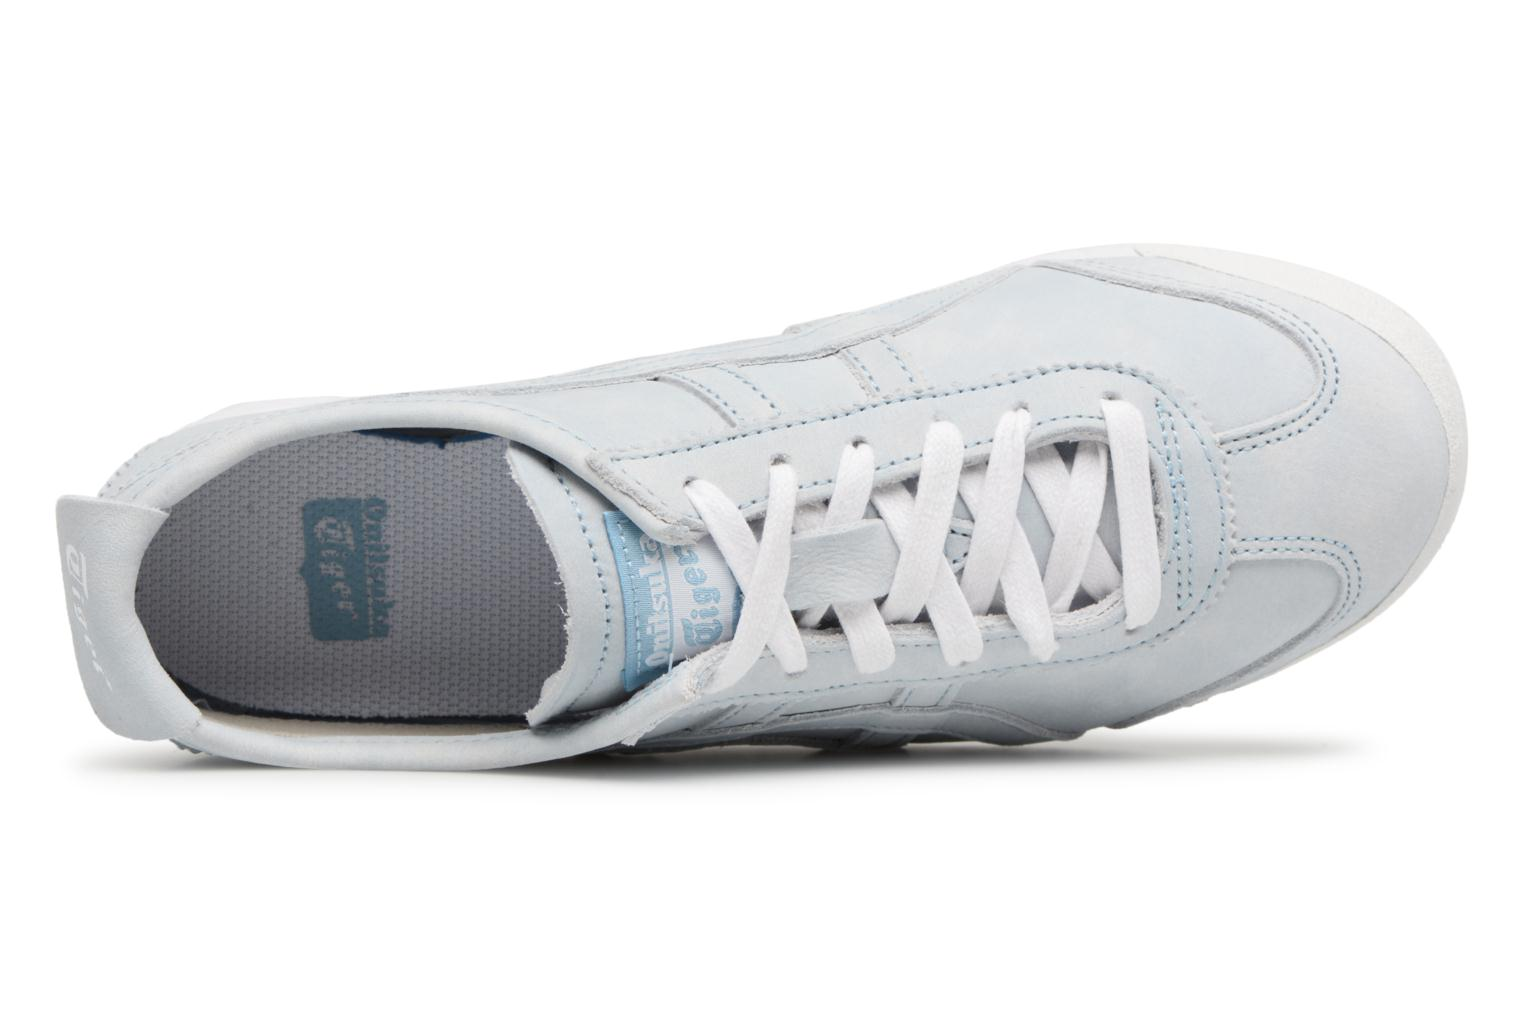 Blue Light Light Smoke Blue 66 Smoke Mexico Asics R8xHq1H